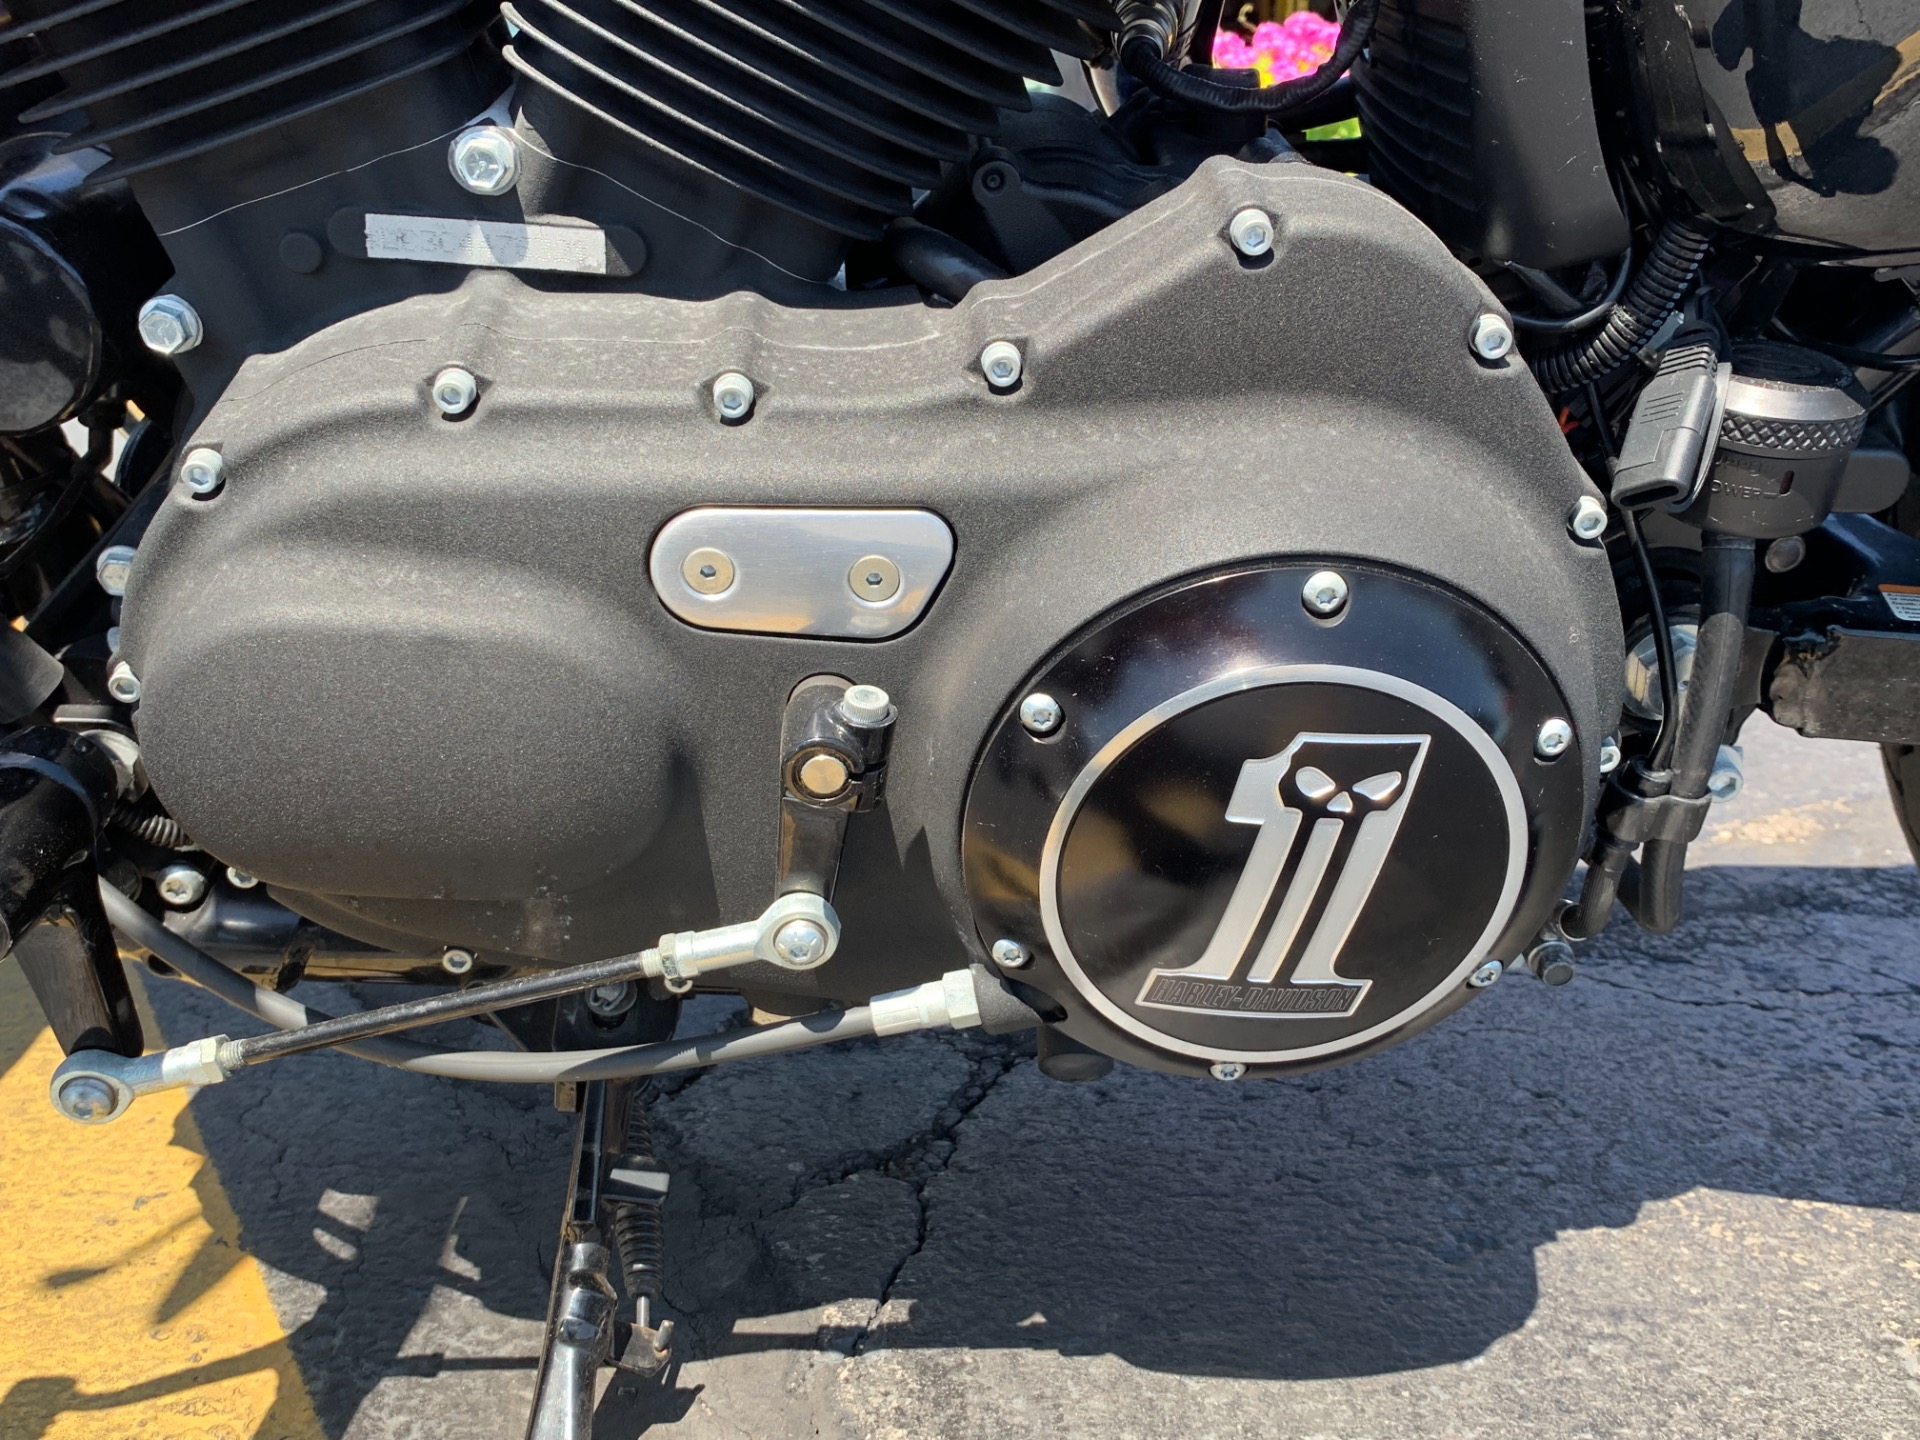 Used-2012-HARLEY-DAVIDSON-XL1200X-Sportster-Forty-Eight